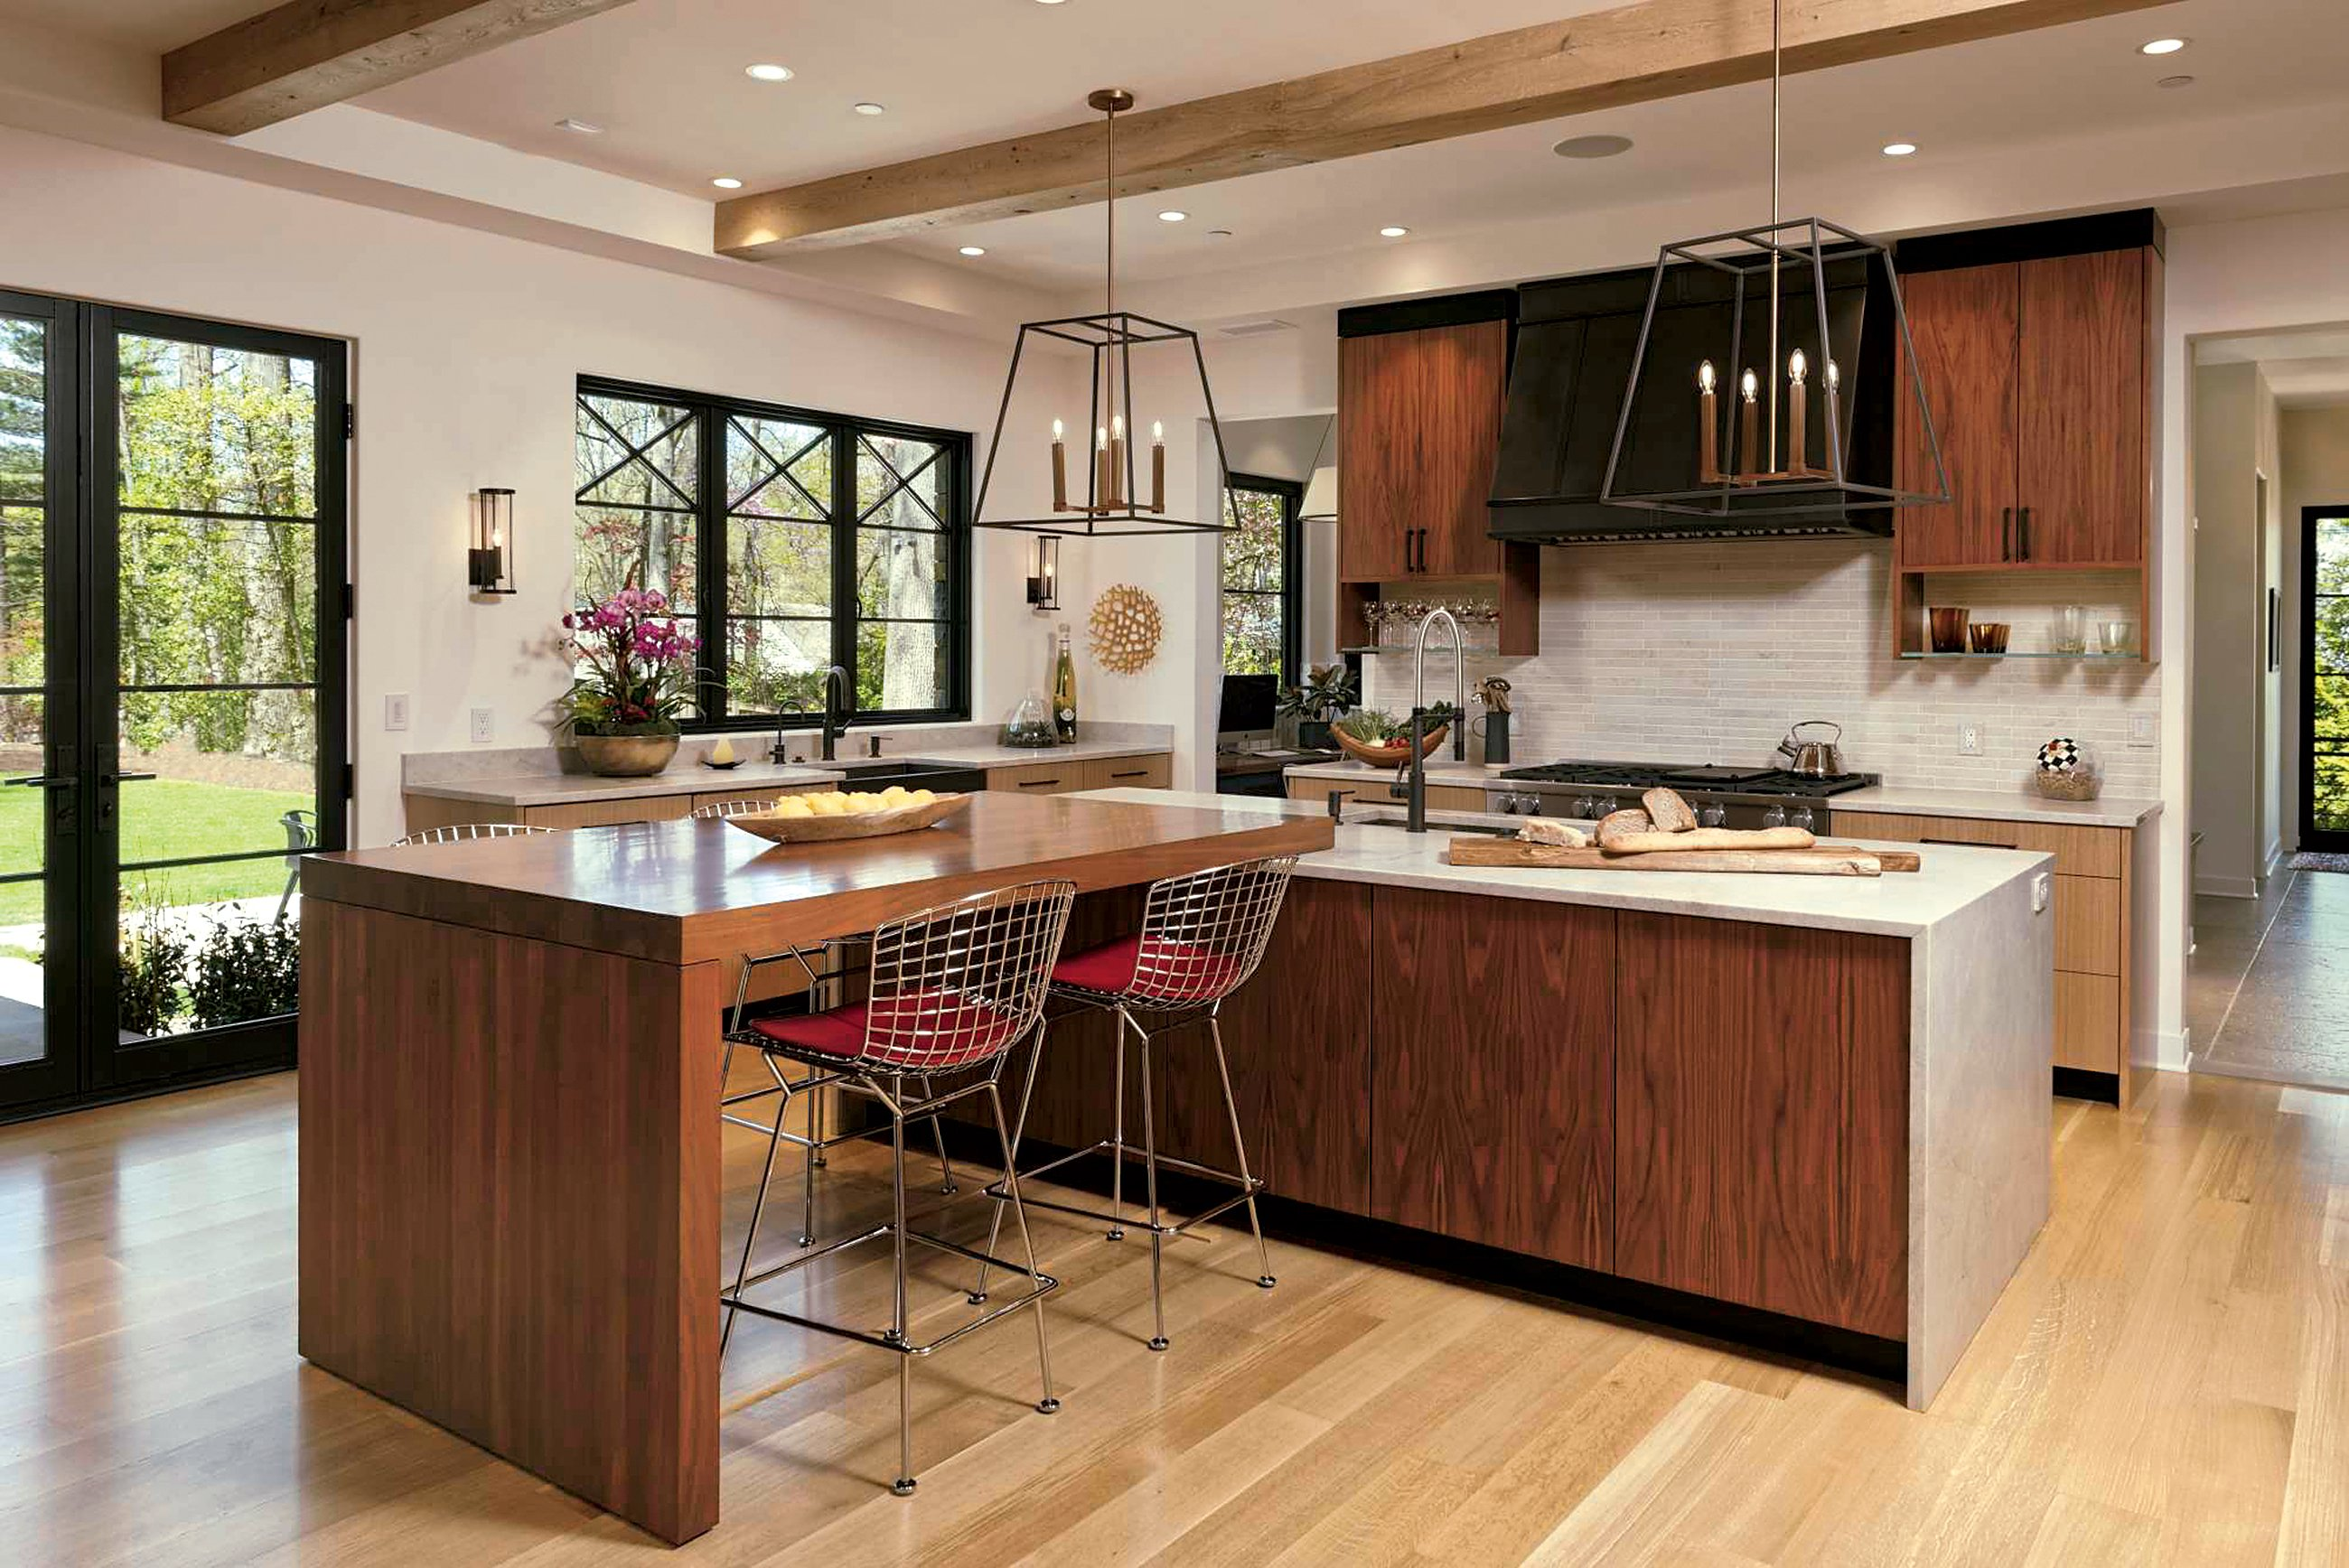 Quartzite countertops in a leather finish add rugged texture. The walnut and oak cabinetry is by Heartwood Design in Afton, Virginia. Photograph by Bob Narod/GTM Architects.